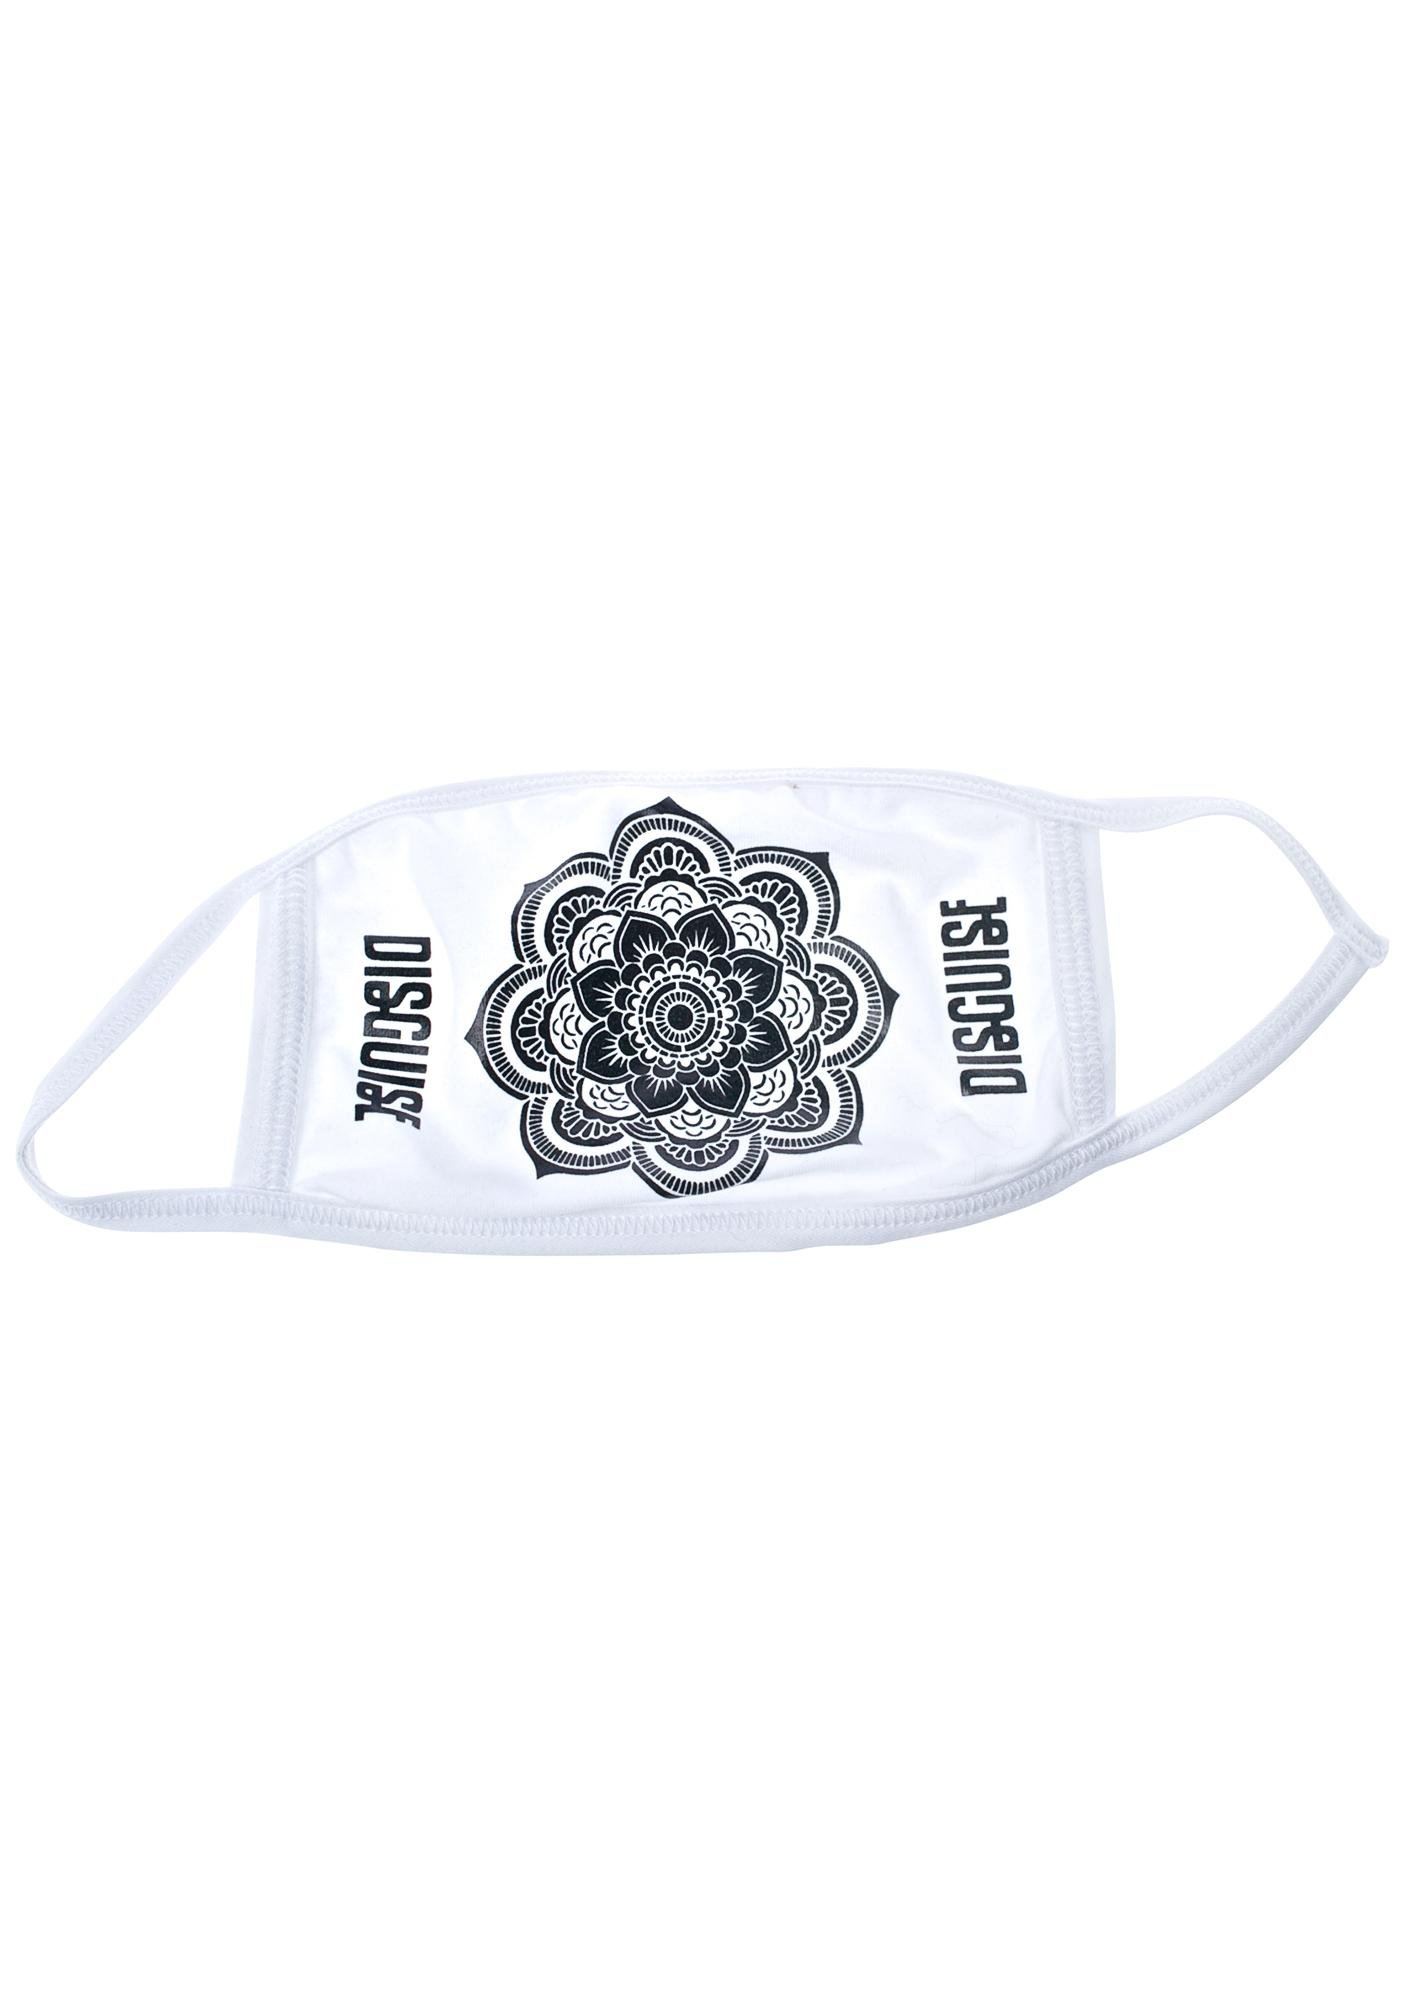 MeYouVersusLife X Disguise Mandala Flower Of Life Face Mask